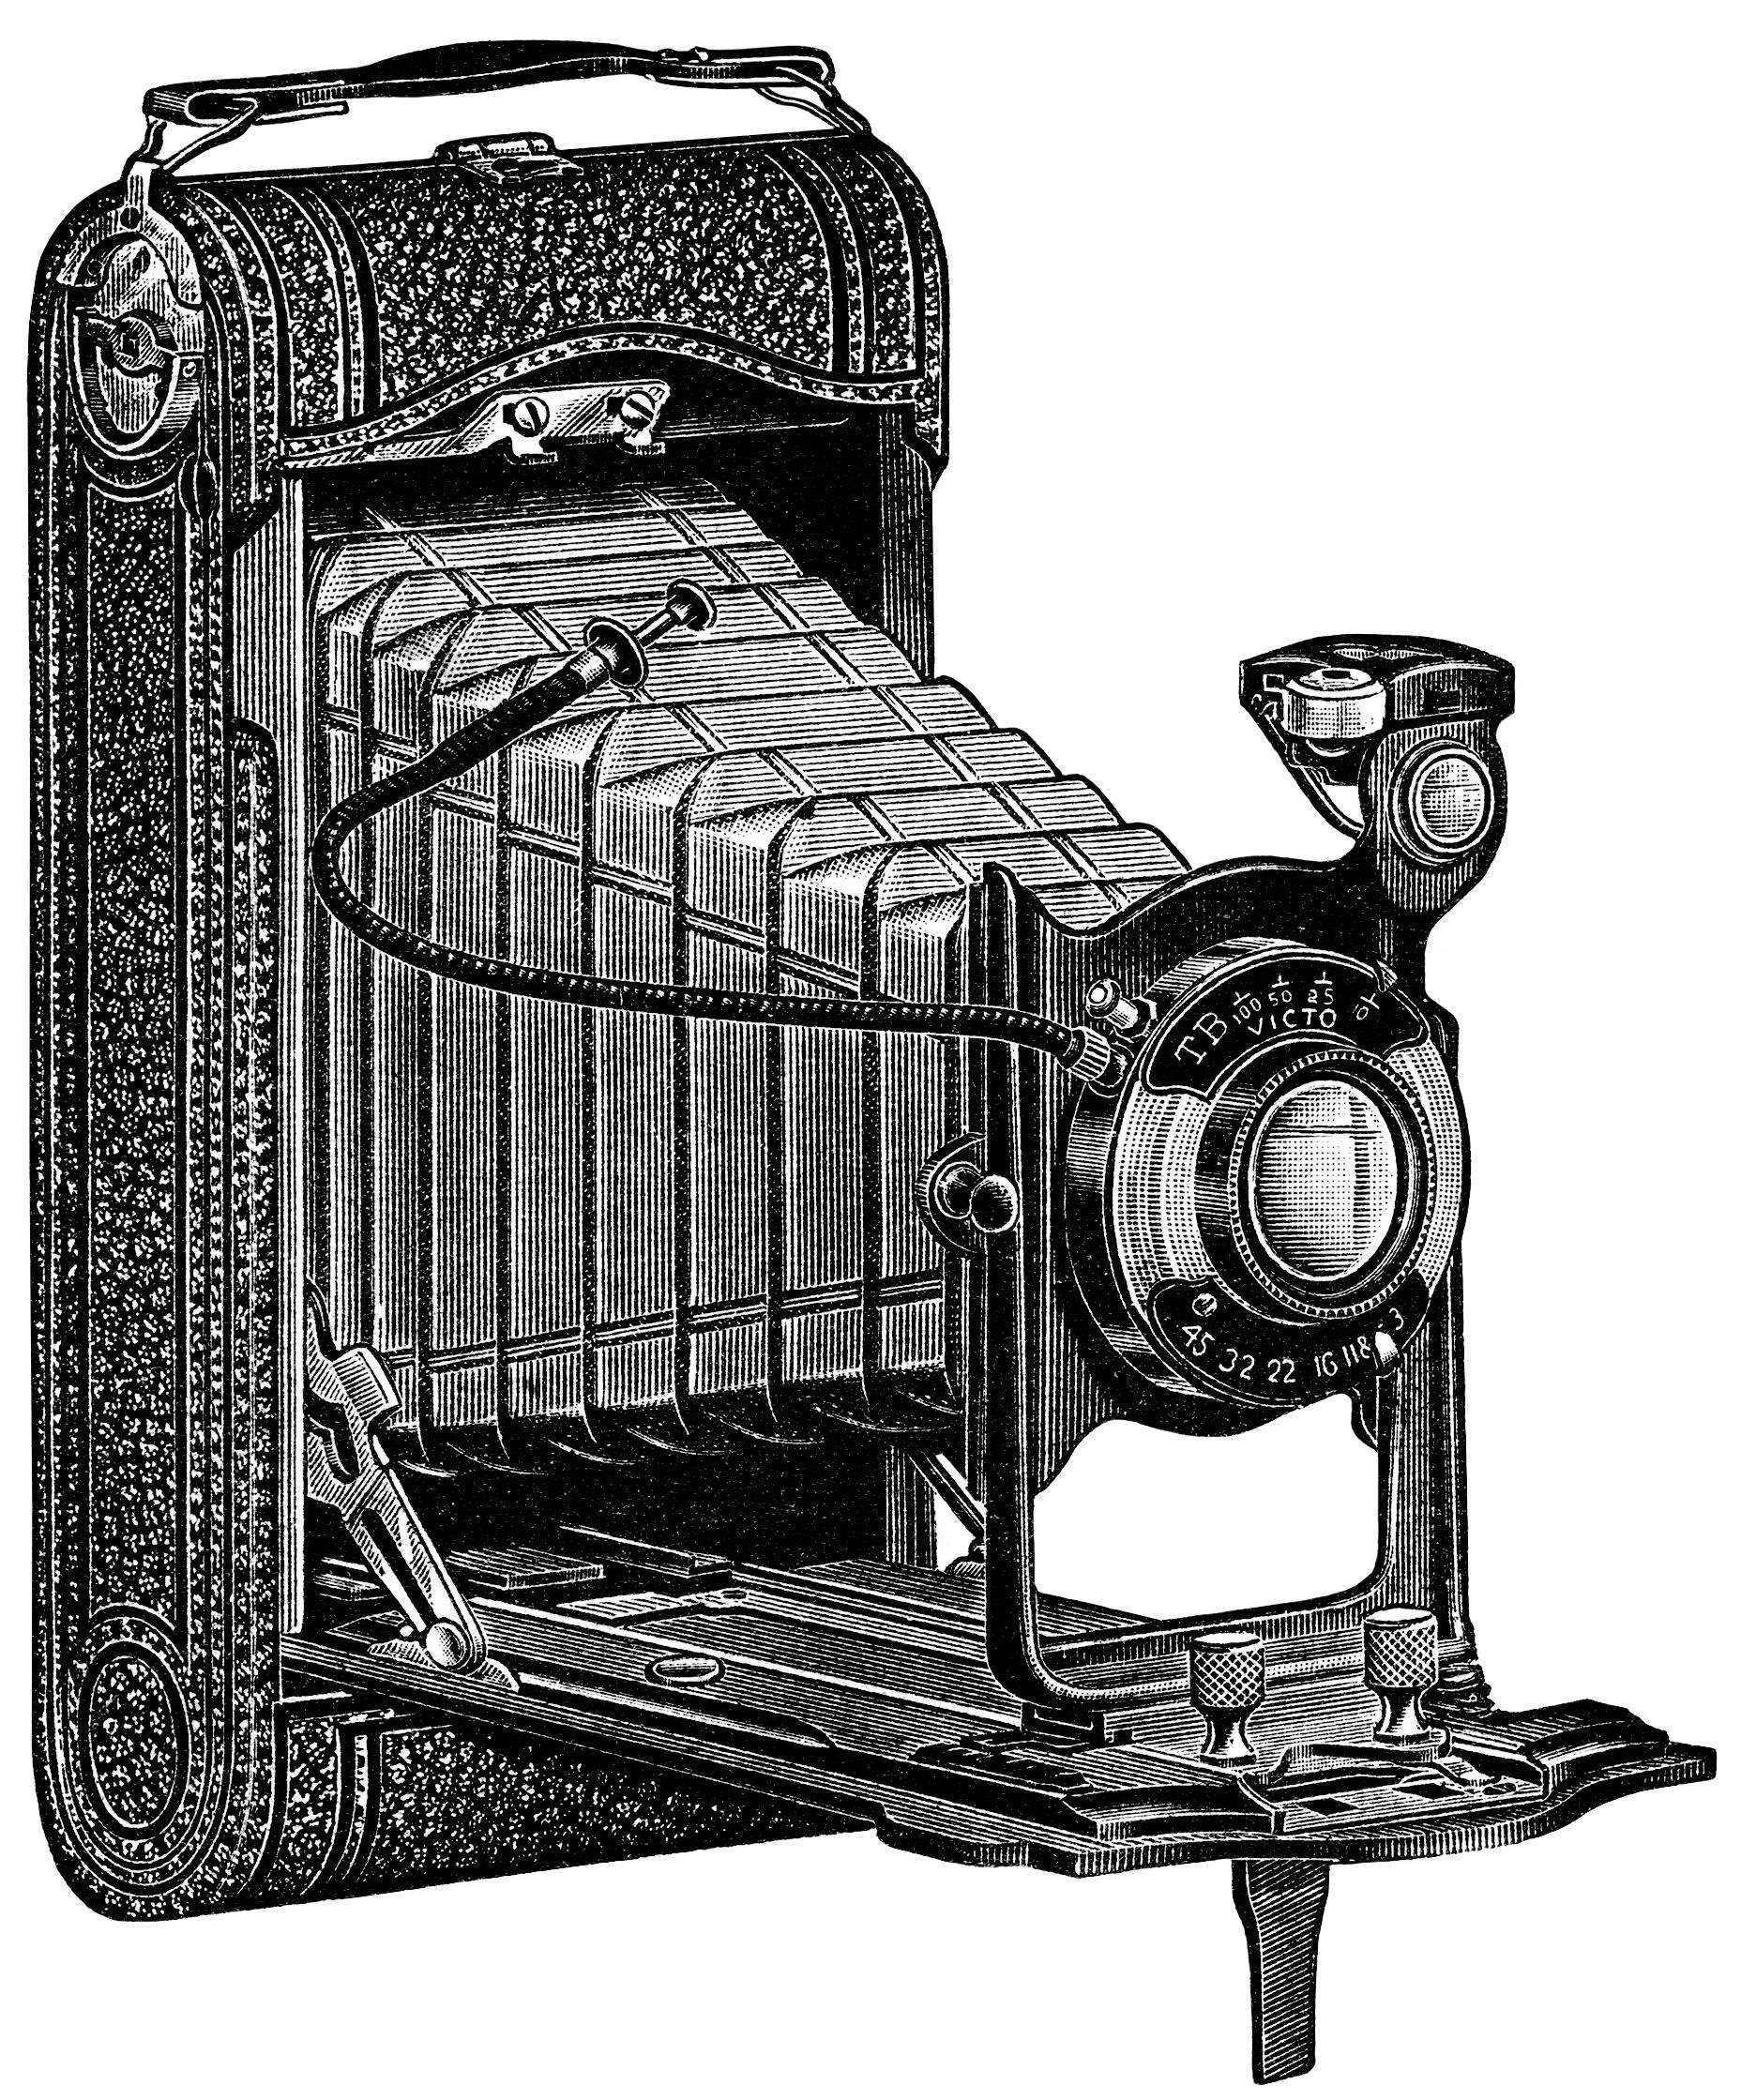 Clip Art Vintage Camera Clip Art 1000 images about camera clip art on pinterest vintage cameras and graphics